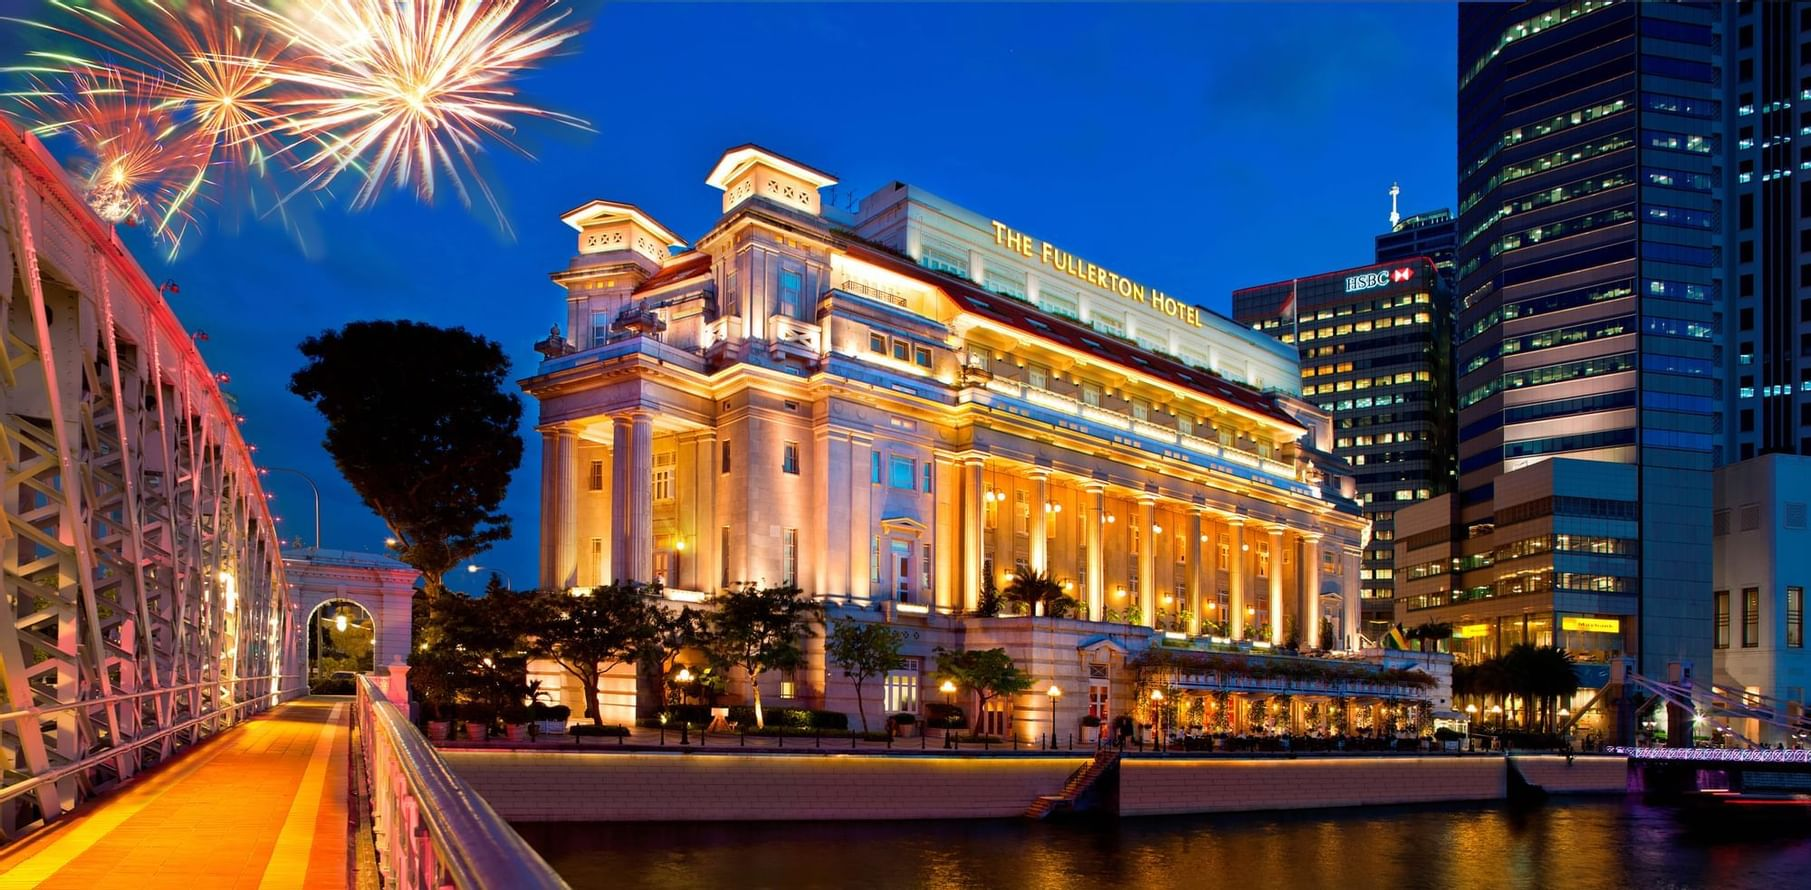 Exterior view of the hotel with fireworks